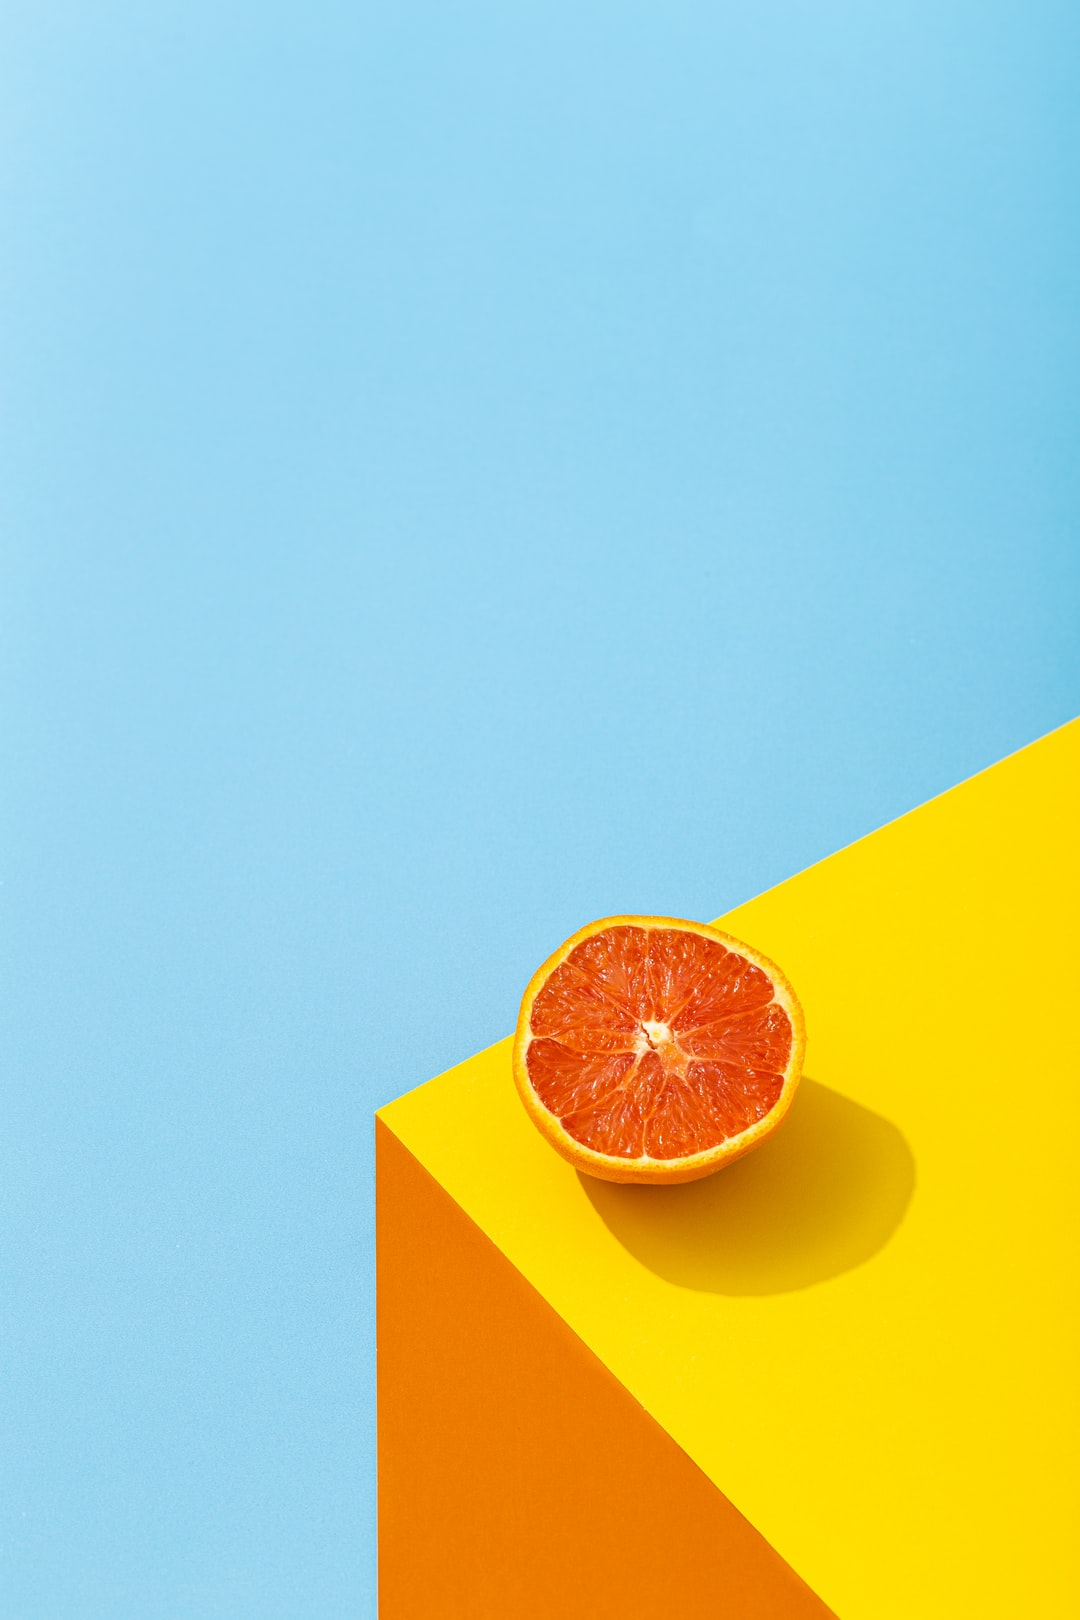 an orange  *Keep track of my latest project, all things about food & product photography here:  - Instagram: https://www.instagram.com/picoftasty/  or  https://www.instagram.com/mae_foodfoto/  - Website: https://www.picoftasty.com/   - Email: picoftasty@gmail.com